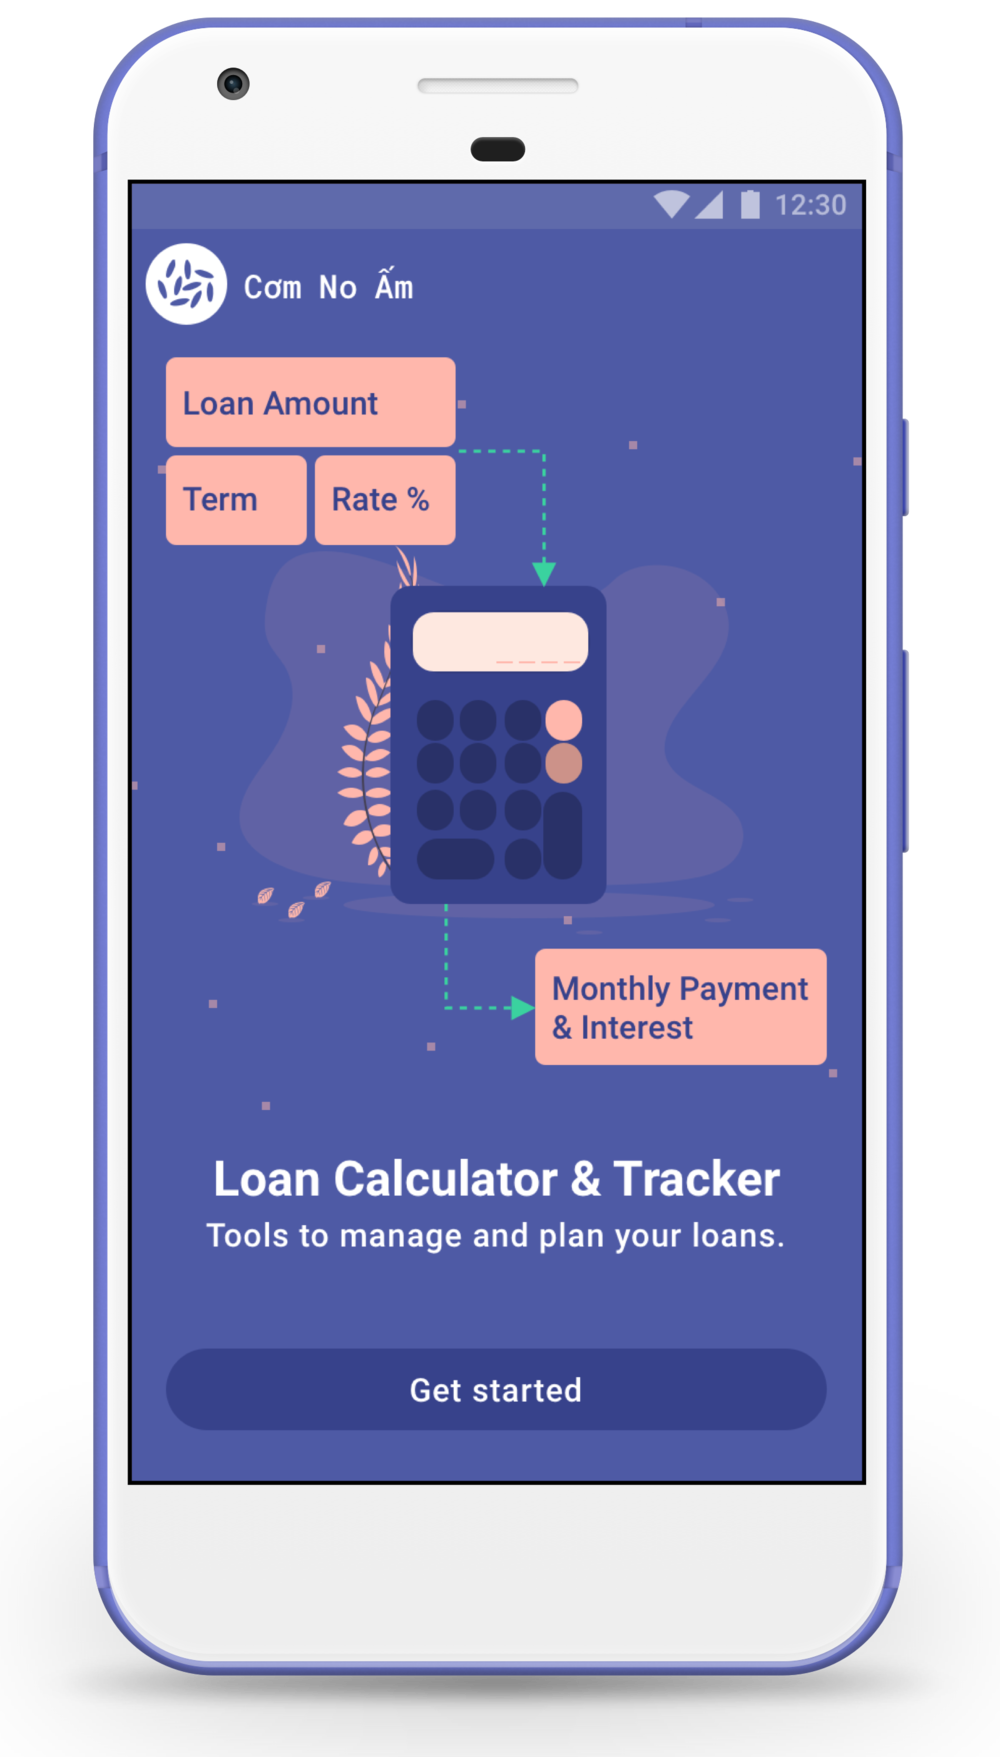 The app also comes with loan tools to help the user stay on top of her loan management.